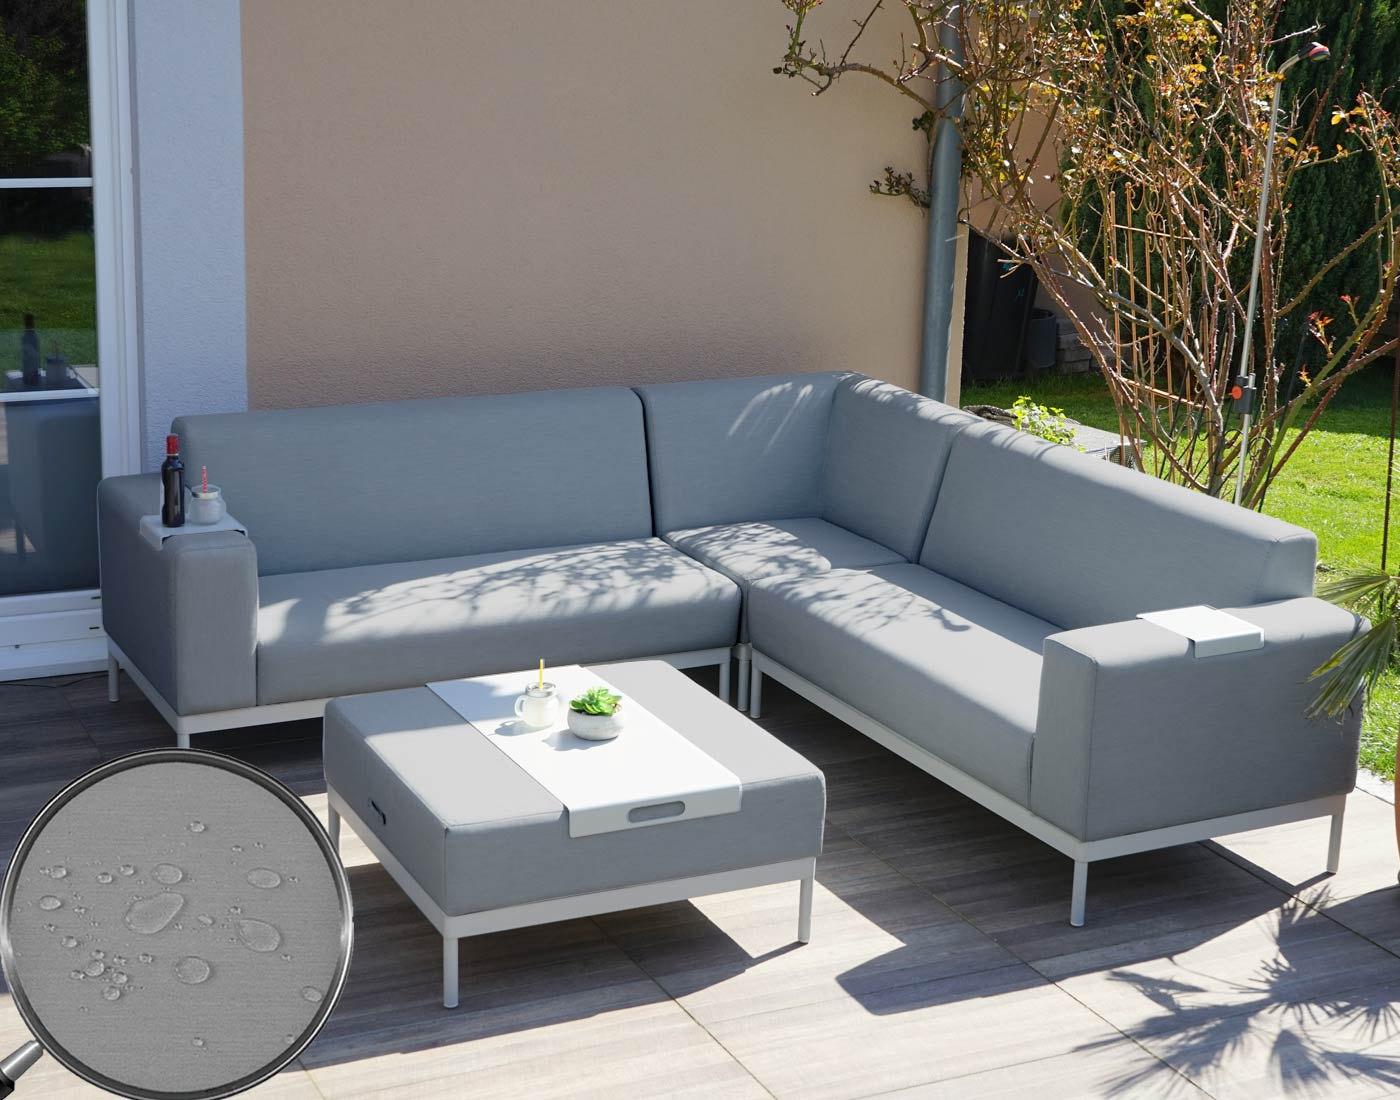 alu garten garnitur hwc c47 sofa outdoor textil grau mit ablage ohne kissen. Black Bedroom Furniture Sets. Home Design Ideas